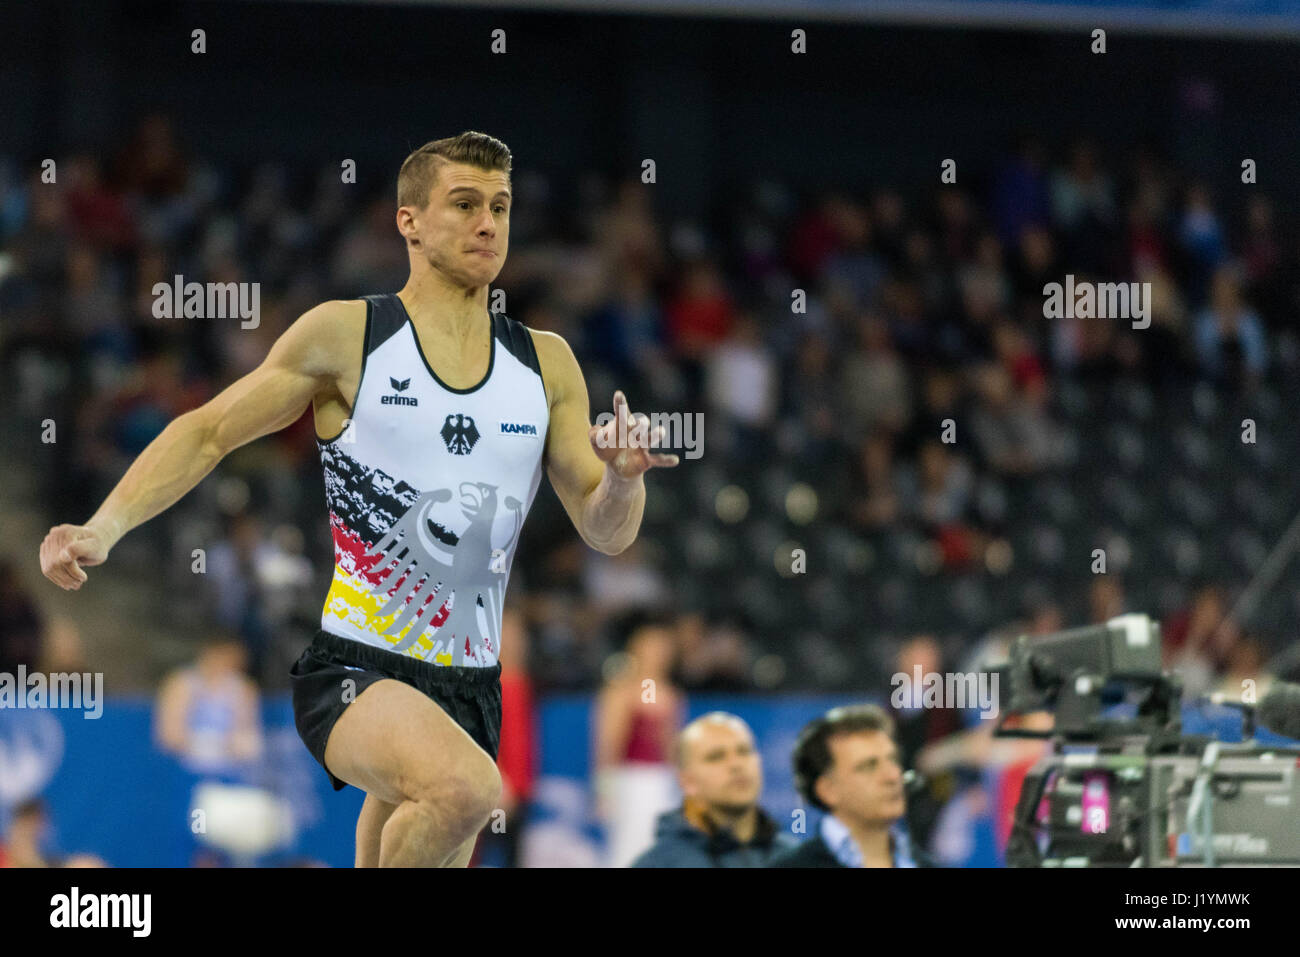 Cluj Napoca, Romania. 21st Apr, 2017. Lukas Dauser from Germany performs at the vault at the UEG European Championships - Stock Image